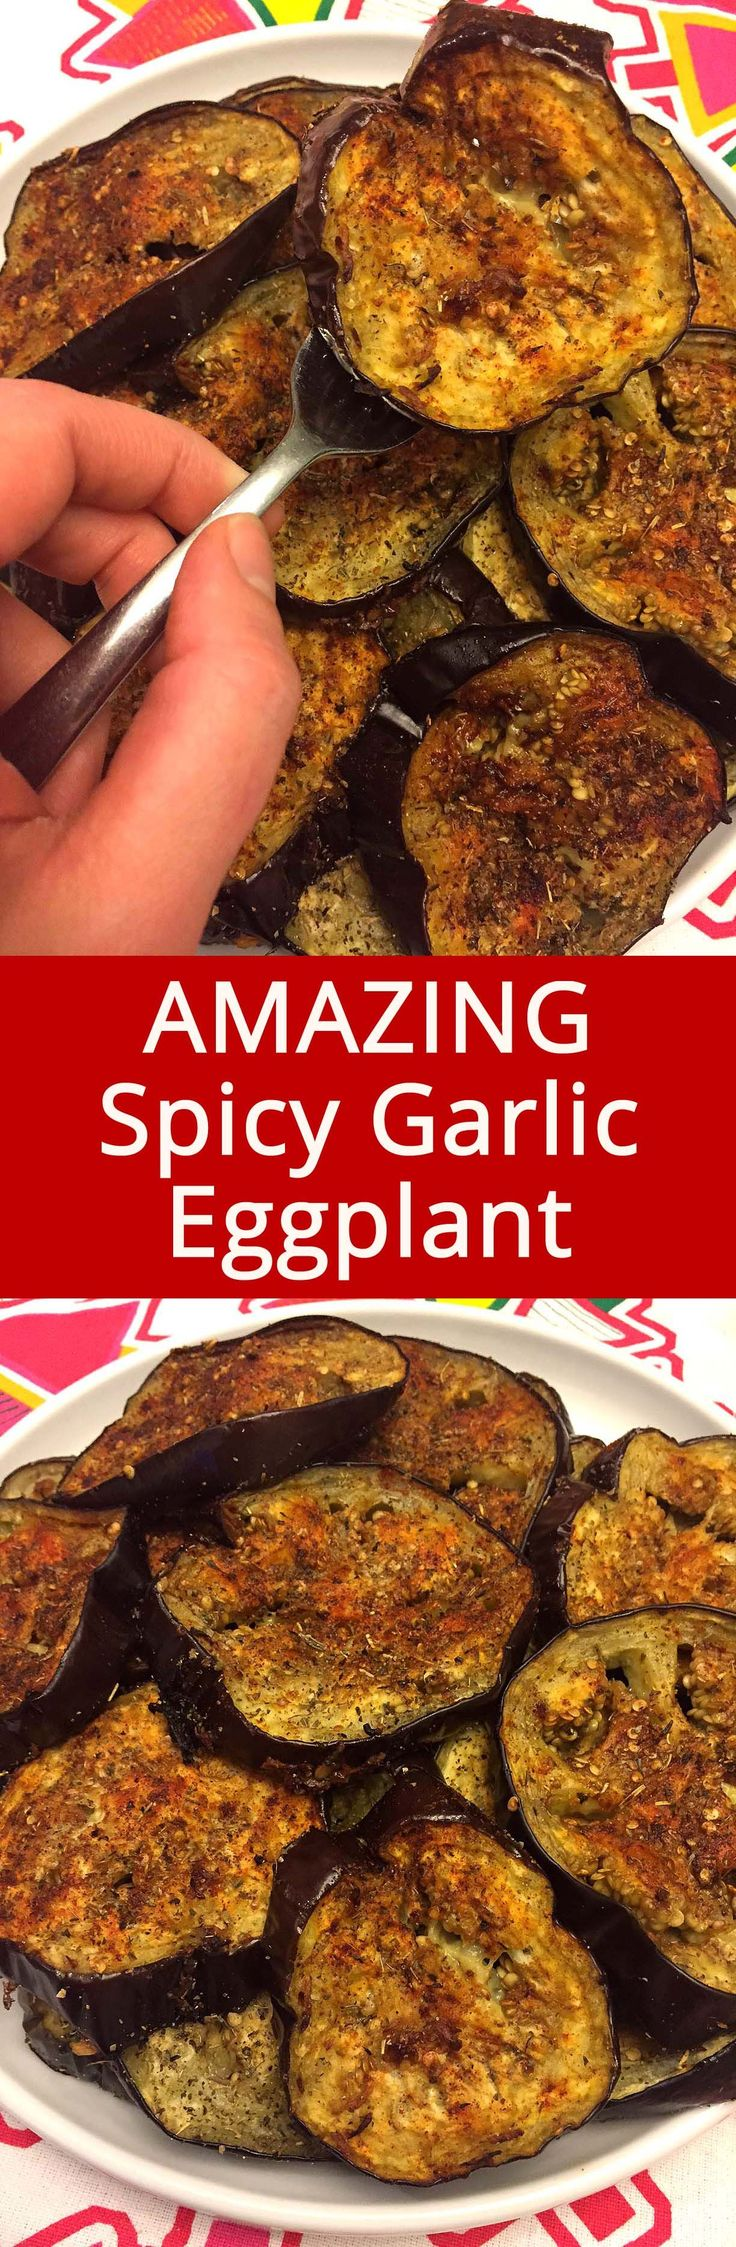 These spicy garlic eggplant slices are so addictive! LOVE this recipe!